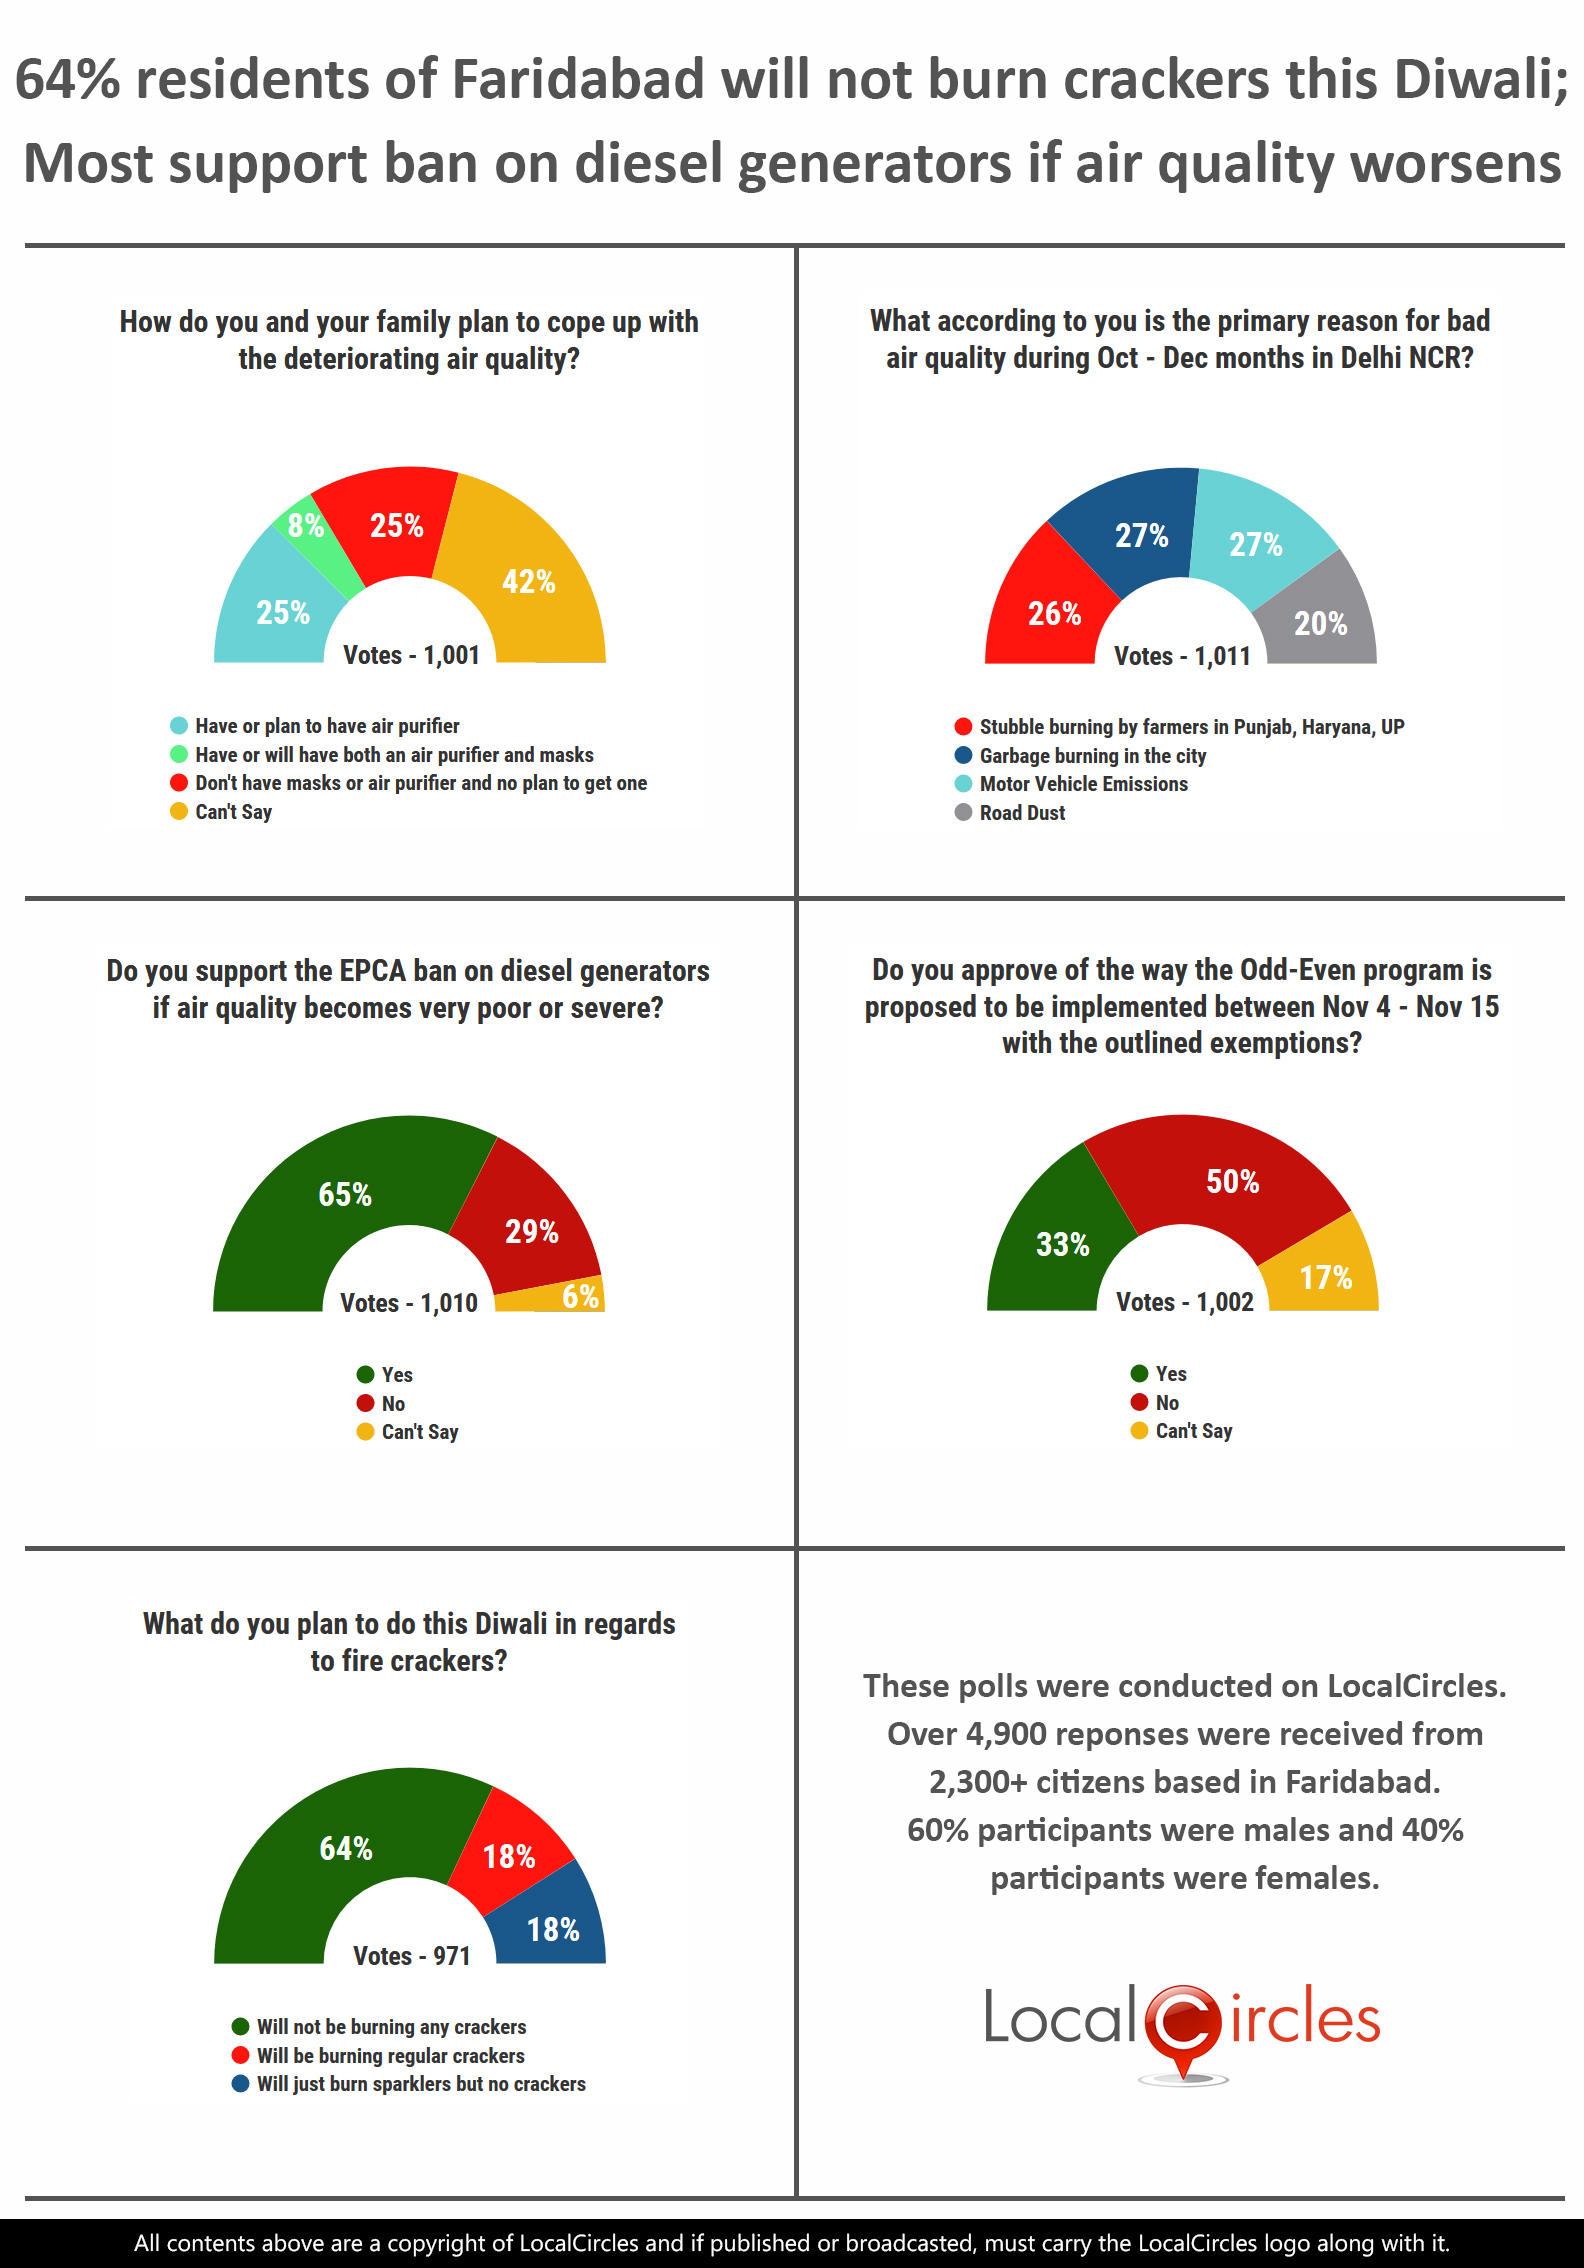 LocalCircles Poll - 64% residents of Faridabad will not burn any crackers this Diwali; Most support ban on diesel generators if air quality worsens